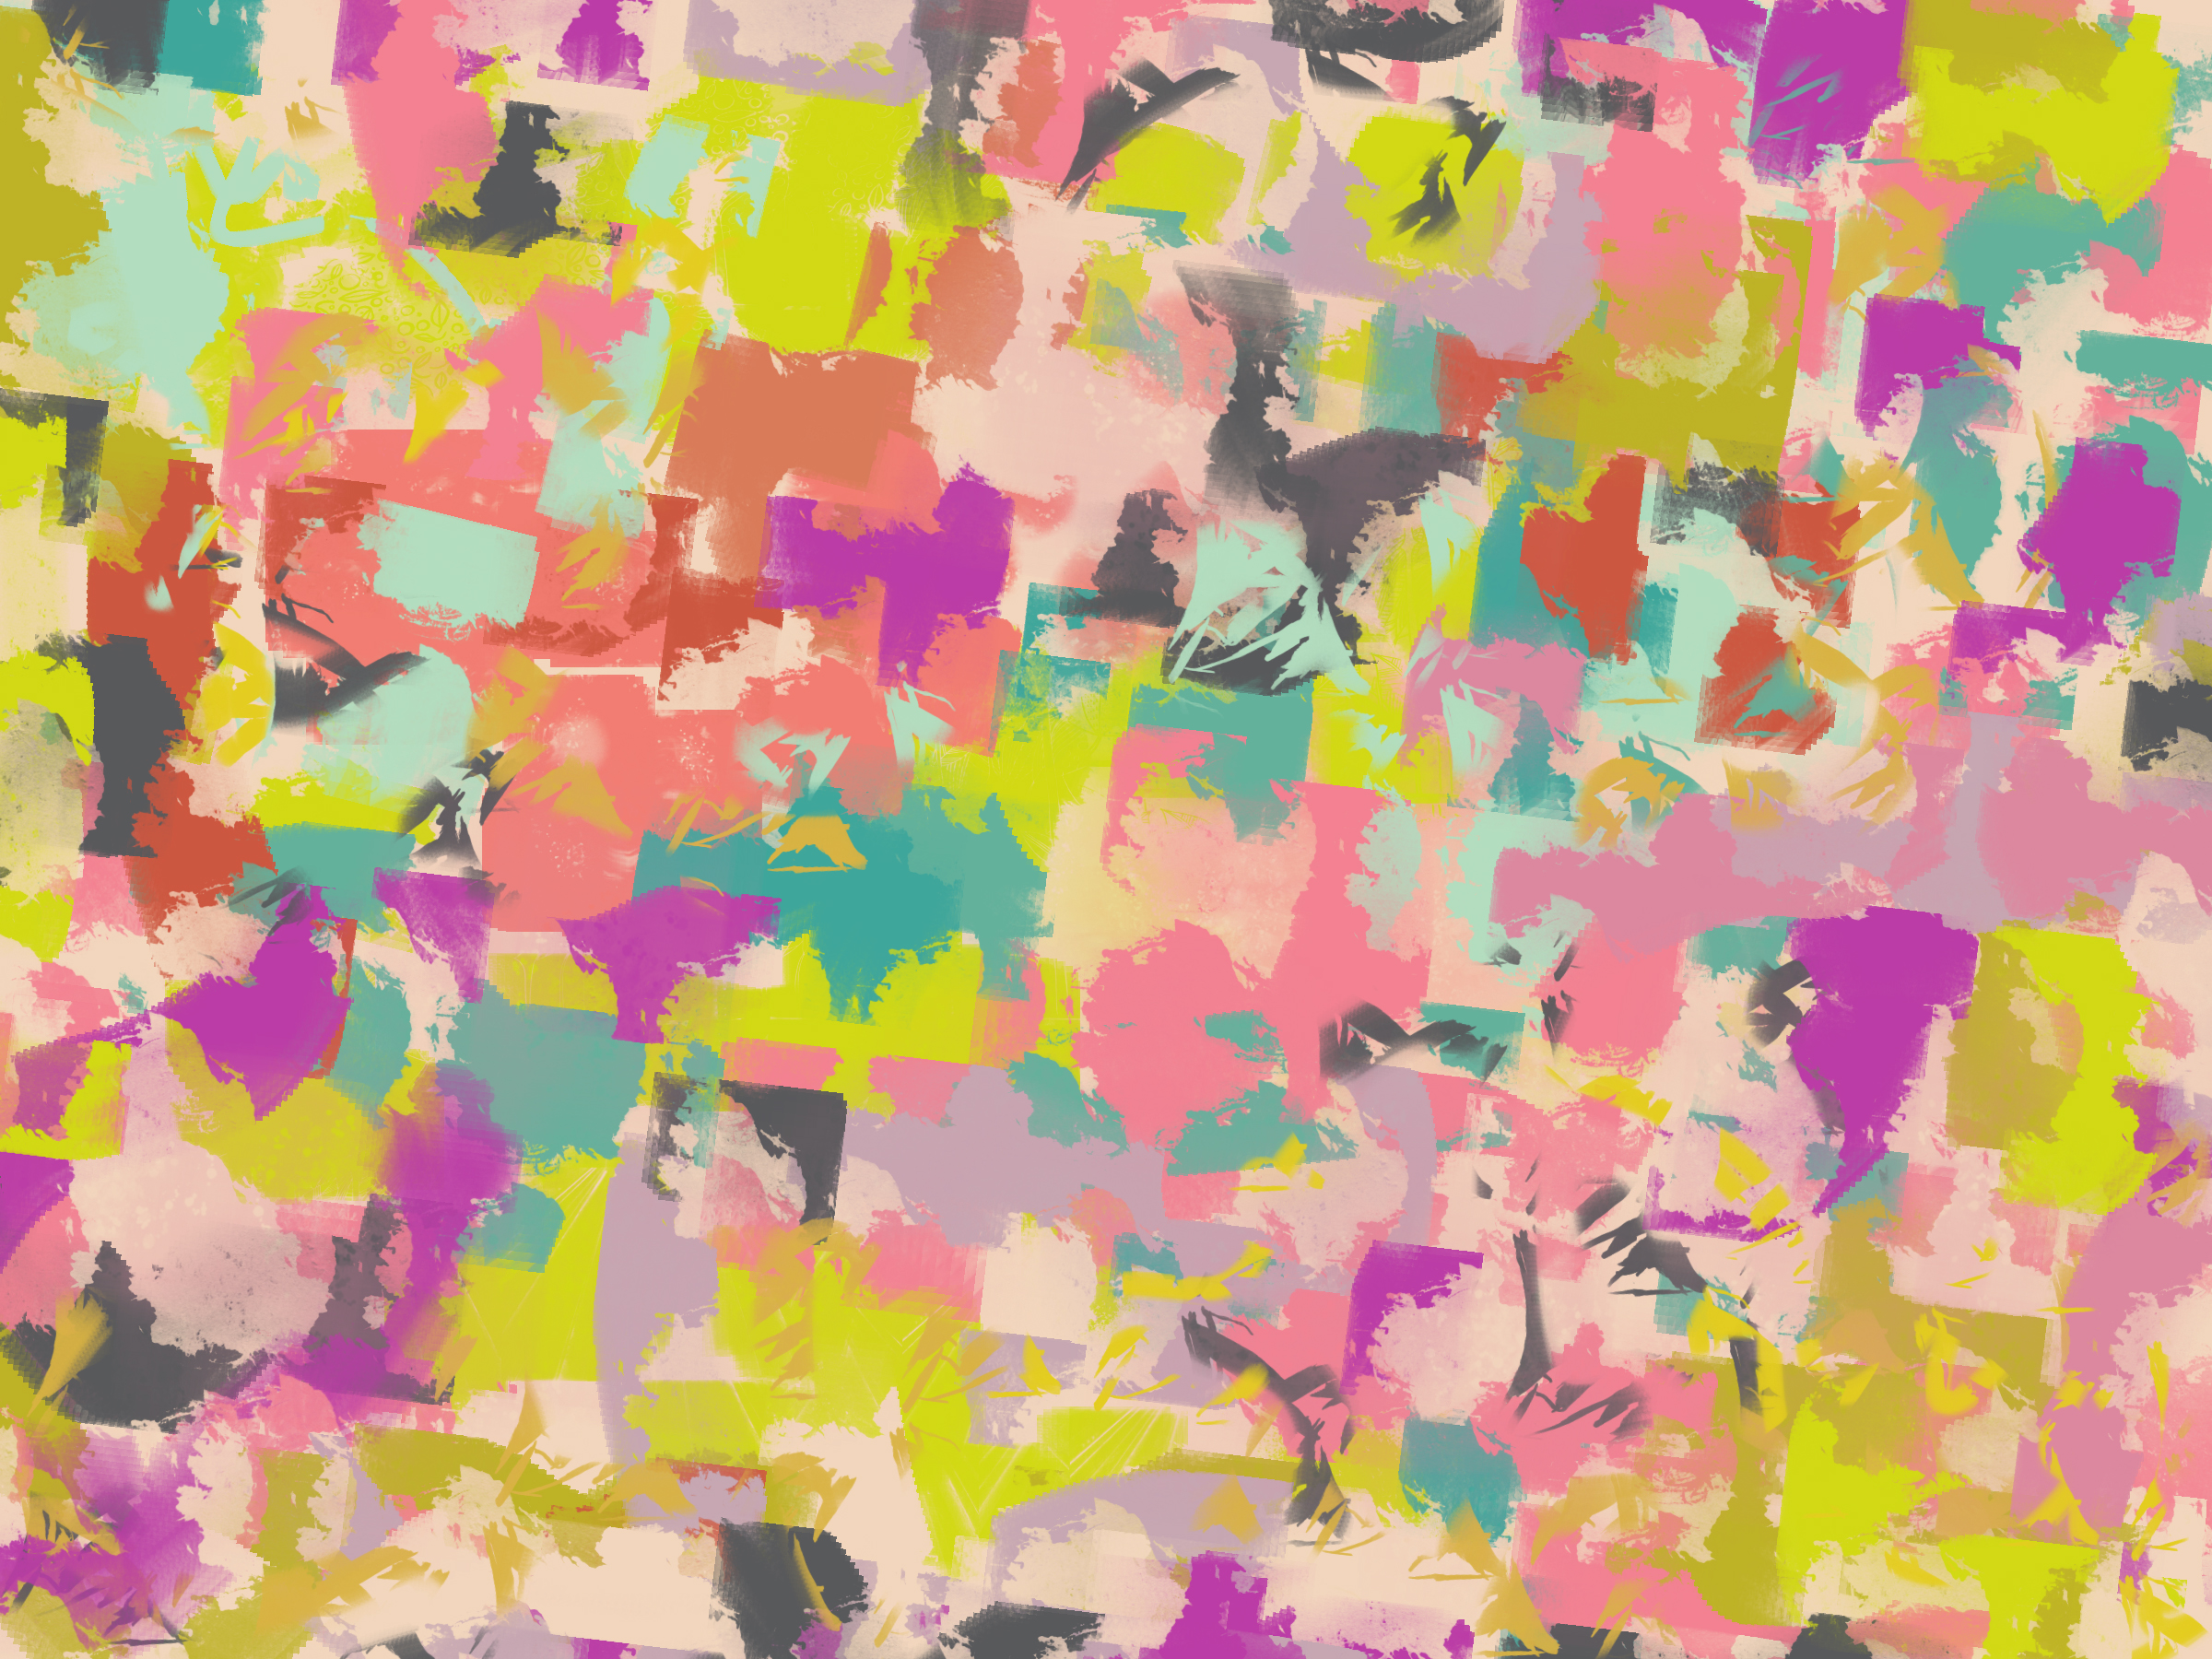 texture Colorful_Paint_Stokes_2018-06-21.jpg